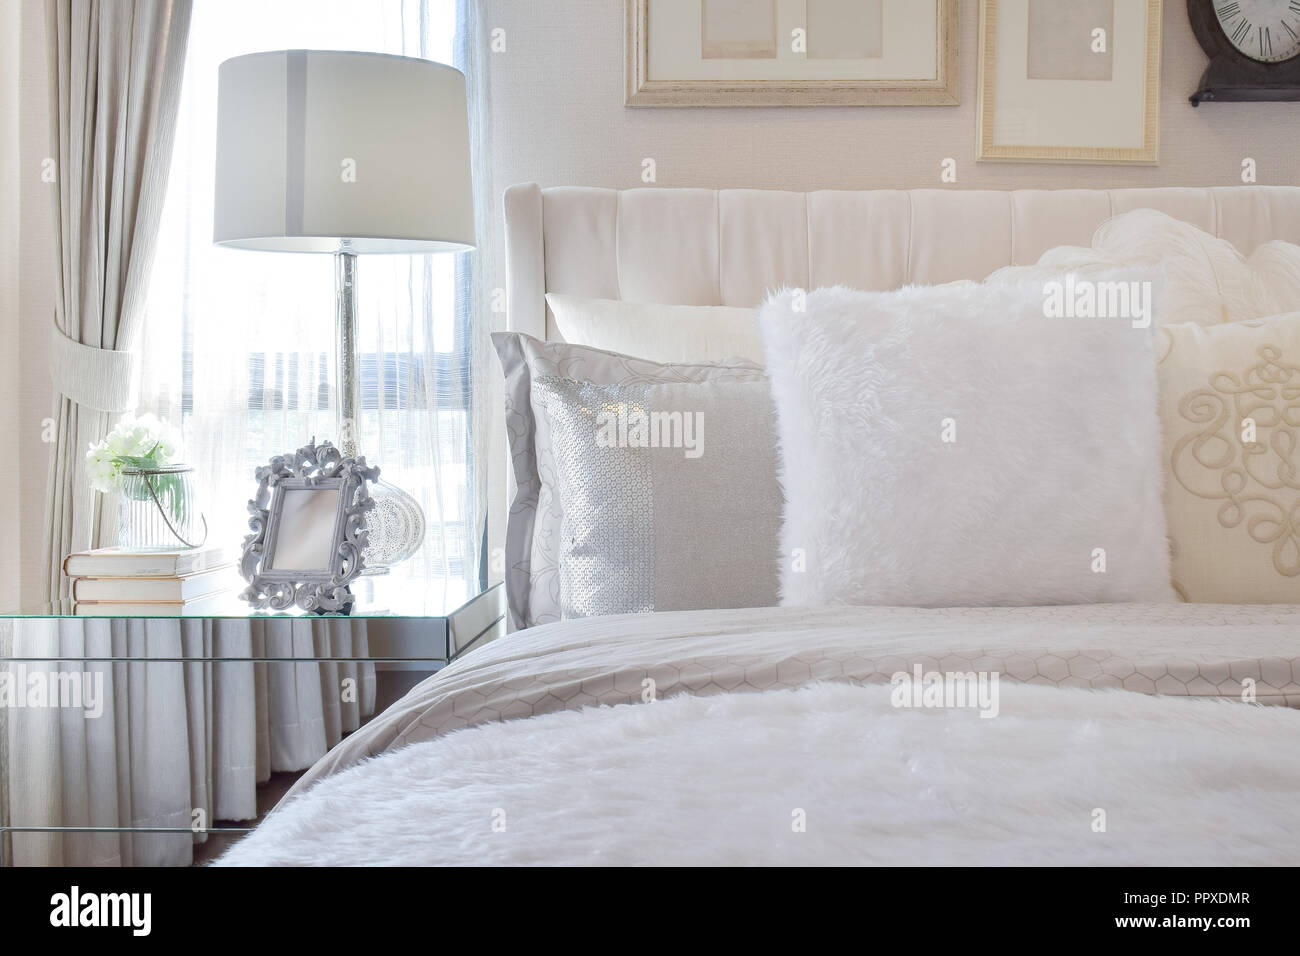 White Lamp With Picture Frame On Glass Bedside Table In